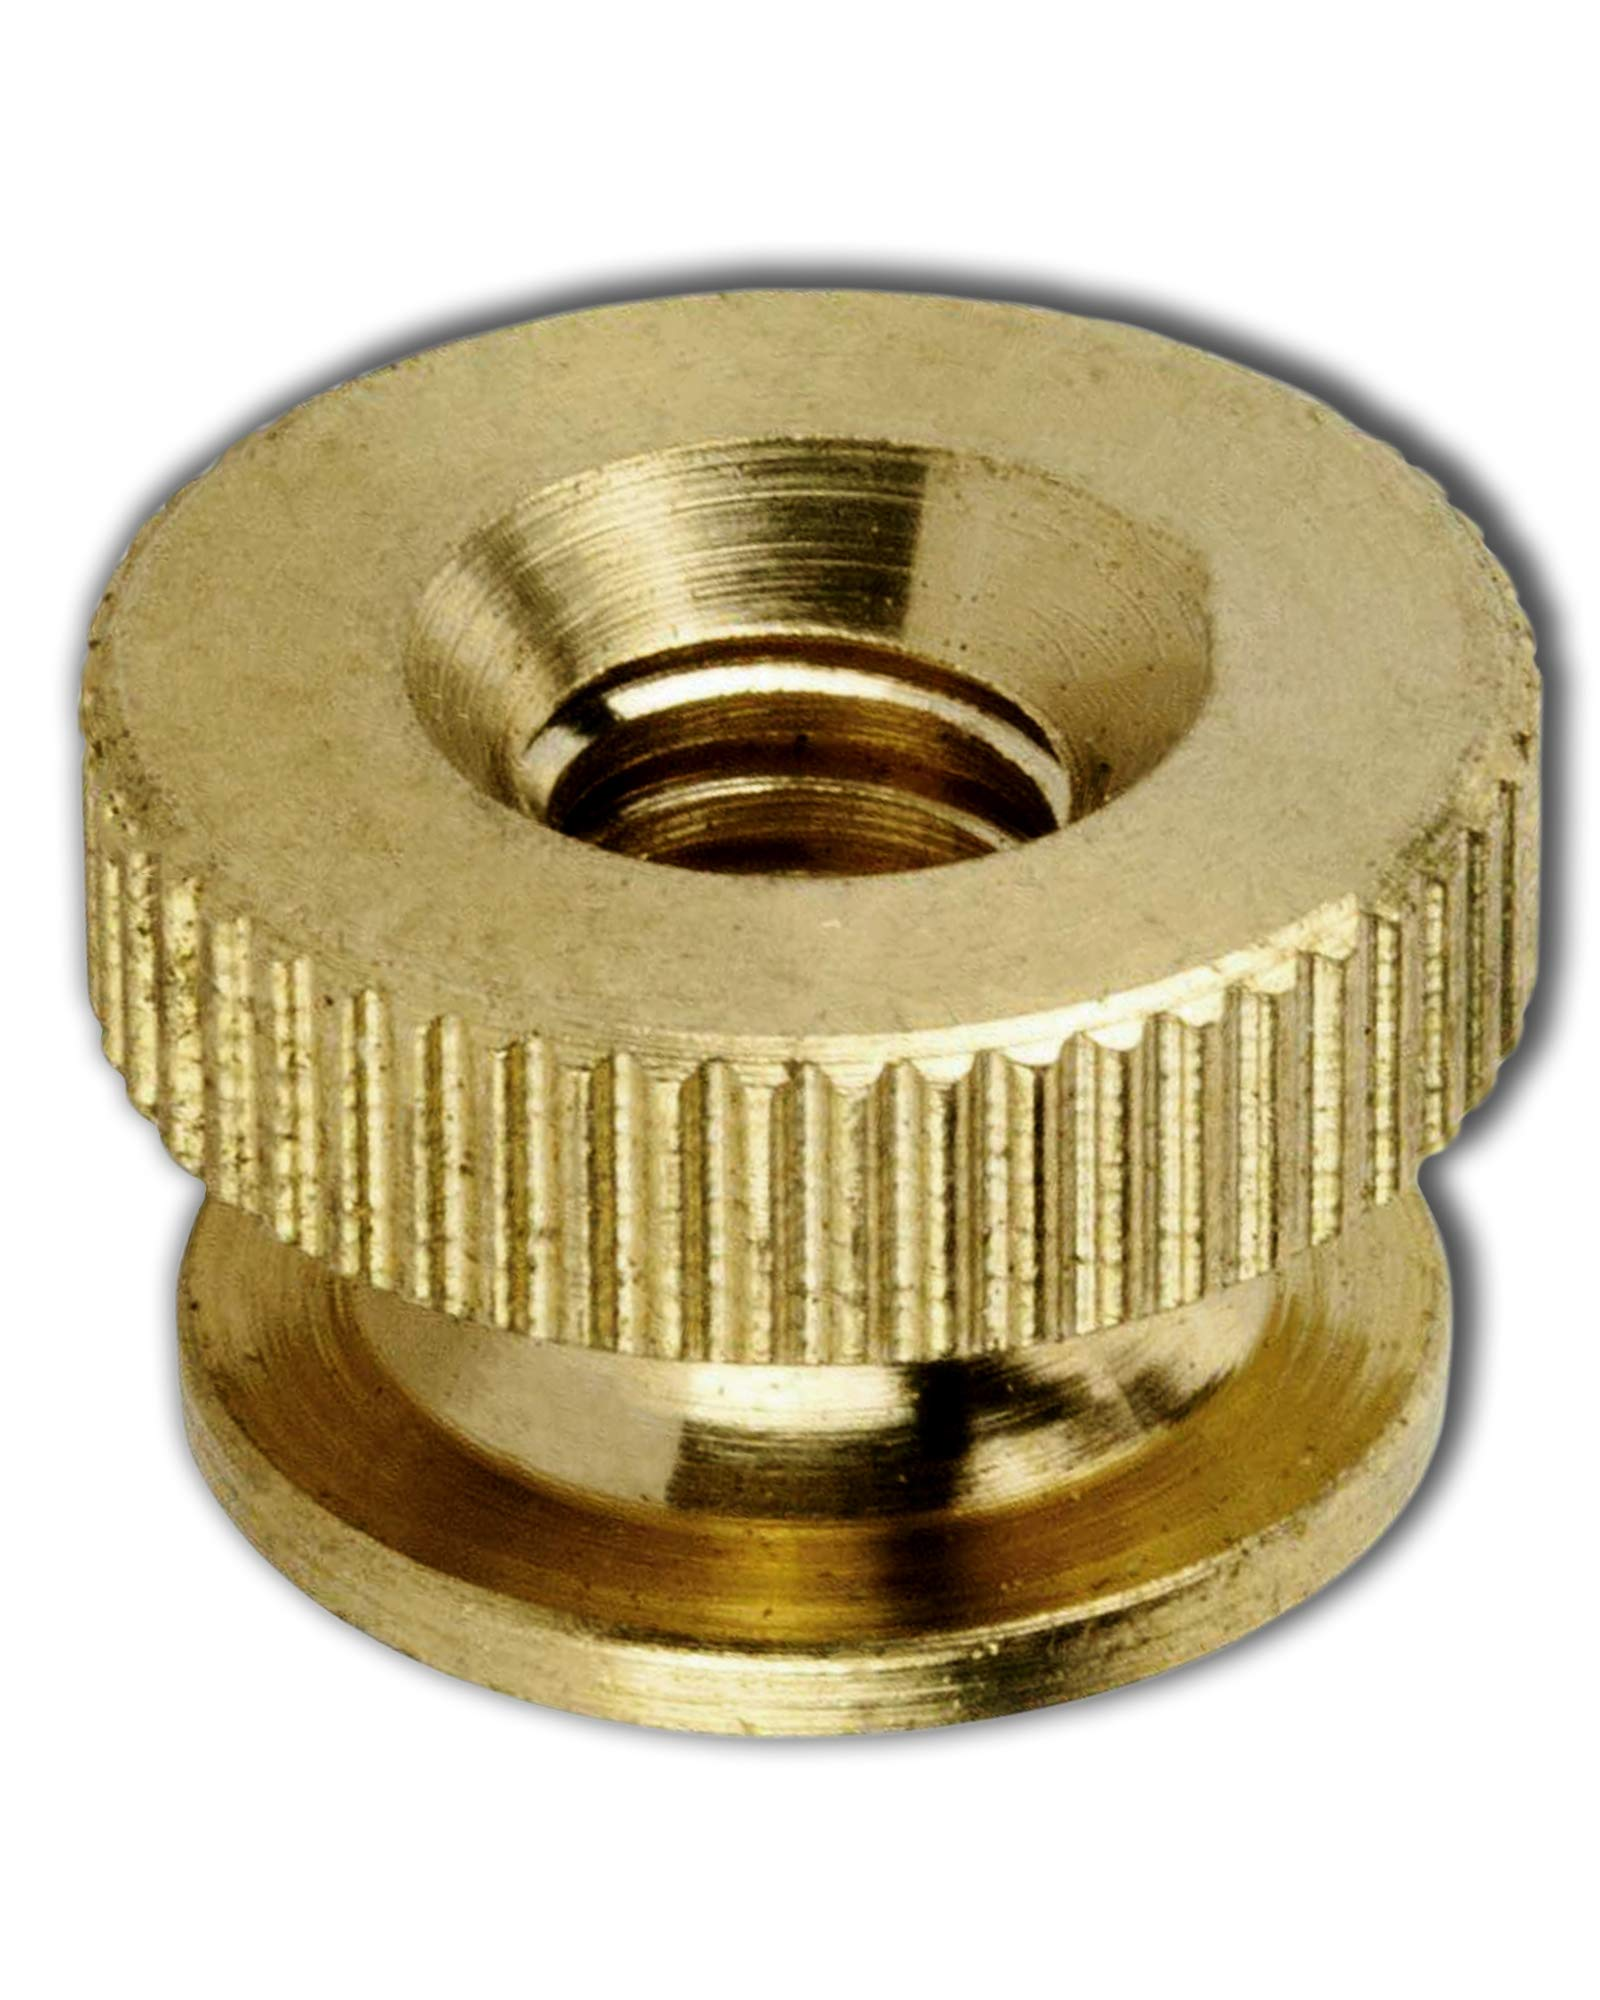 Solid Brass Knurled Thumb Nuts Lock Nuts for Wheels Super S Round and Round Super Deal Pack Knurled Thumb Knurled Nuts Thumb Nut Brass 3/8-16 (25 Pcs) Super-Deals-Shop